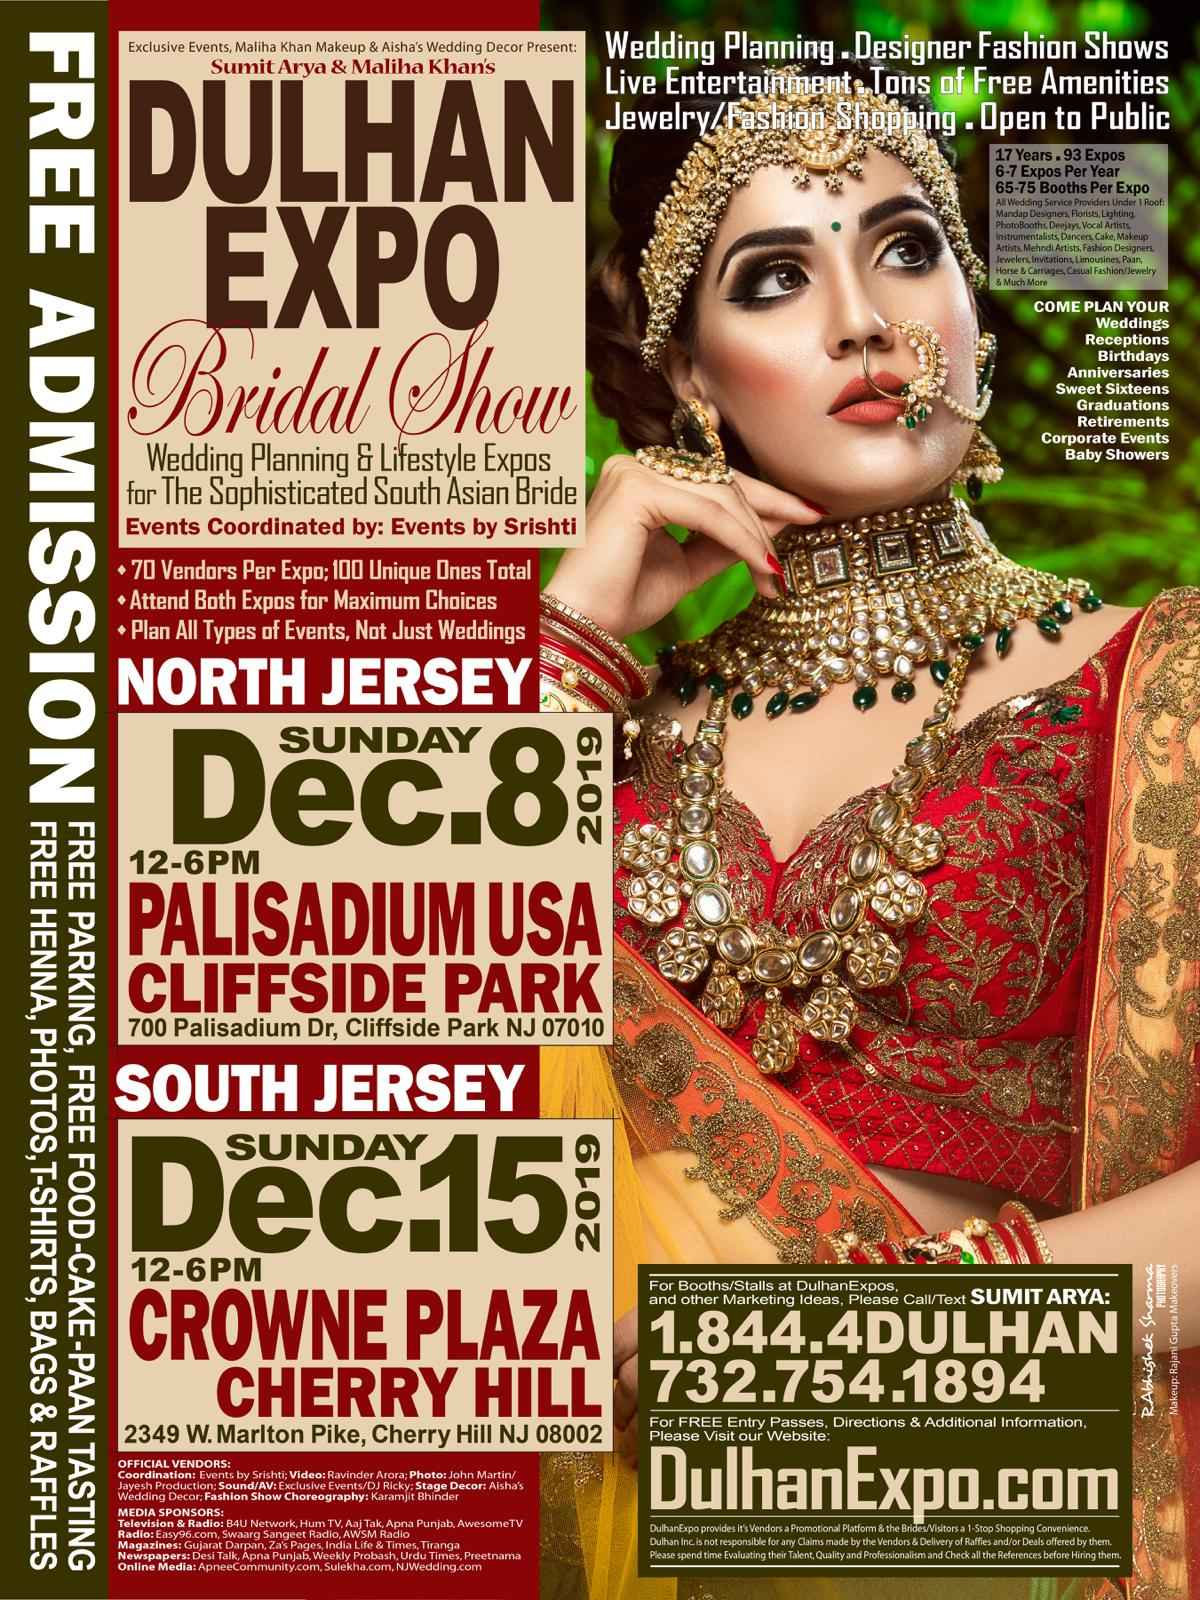 DULHAN EXPO BRIDAL SHOWS